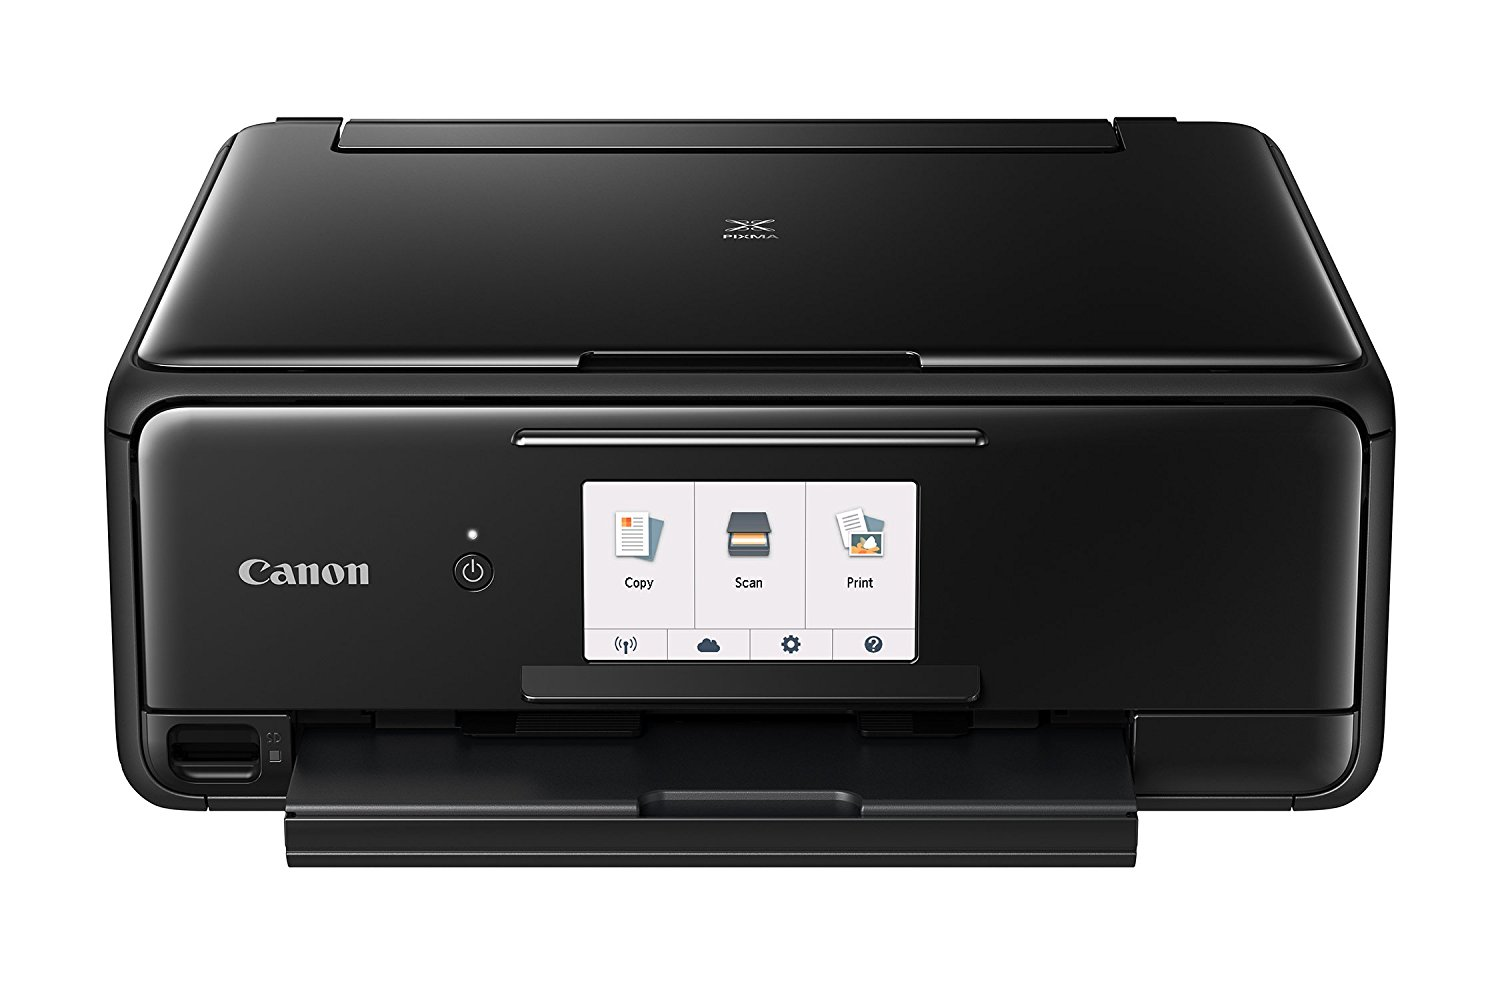 Walmart Canon Wireless Printers All In One Wire Center Draw The Shear And Bending Moment Diagrams For By Davebusters Pixma Ts8120 Black Inkjet Printer Rh Com